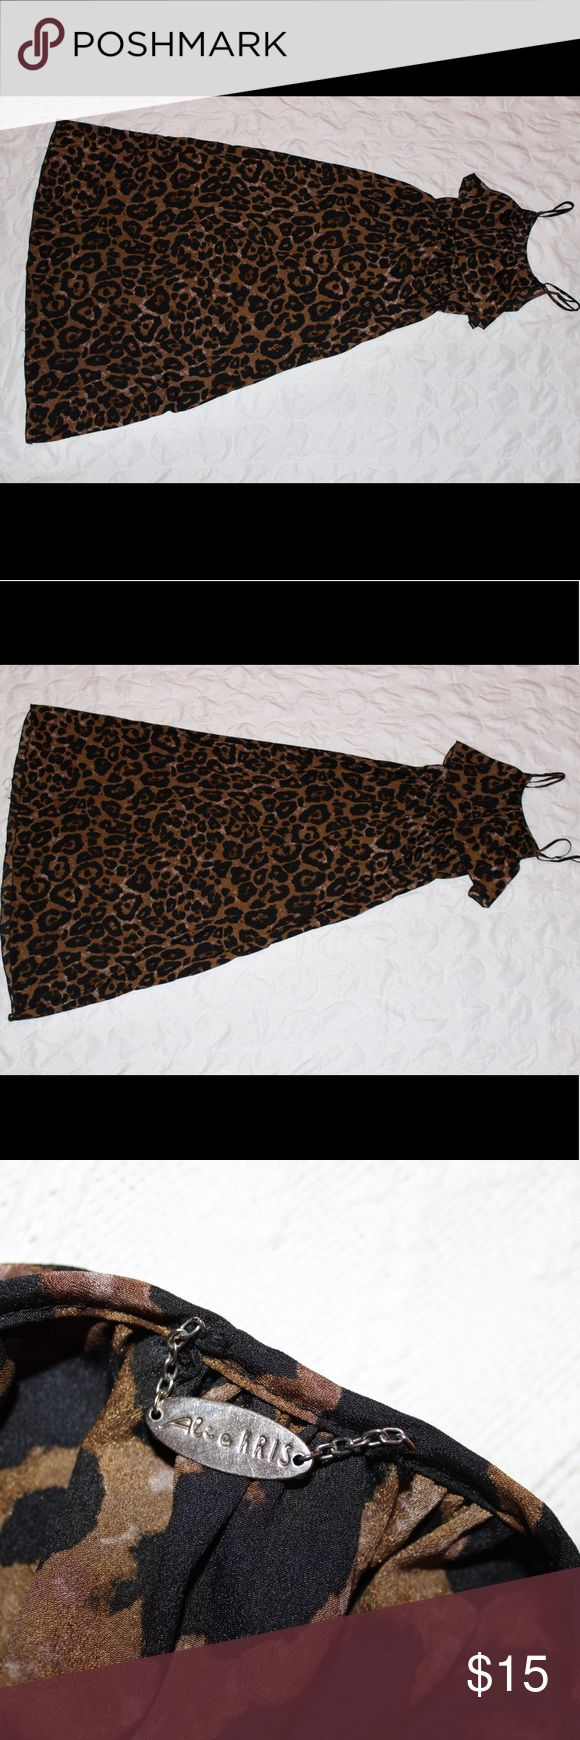 "ALI RRIS Animal Print Maxi Dress ✨ALI RRIS ✨Flowy Maxi Dress ✨Animal Print ✨Like-New, no Faults  Model: -weight: 125 lbs -height: 5'7""  ✨✨✨DISCOUNTS ON BUNDLES✨✨✨ ALI RRIS Dresses Maxi"